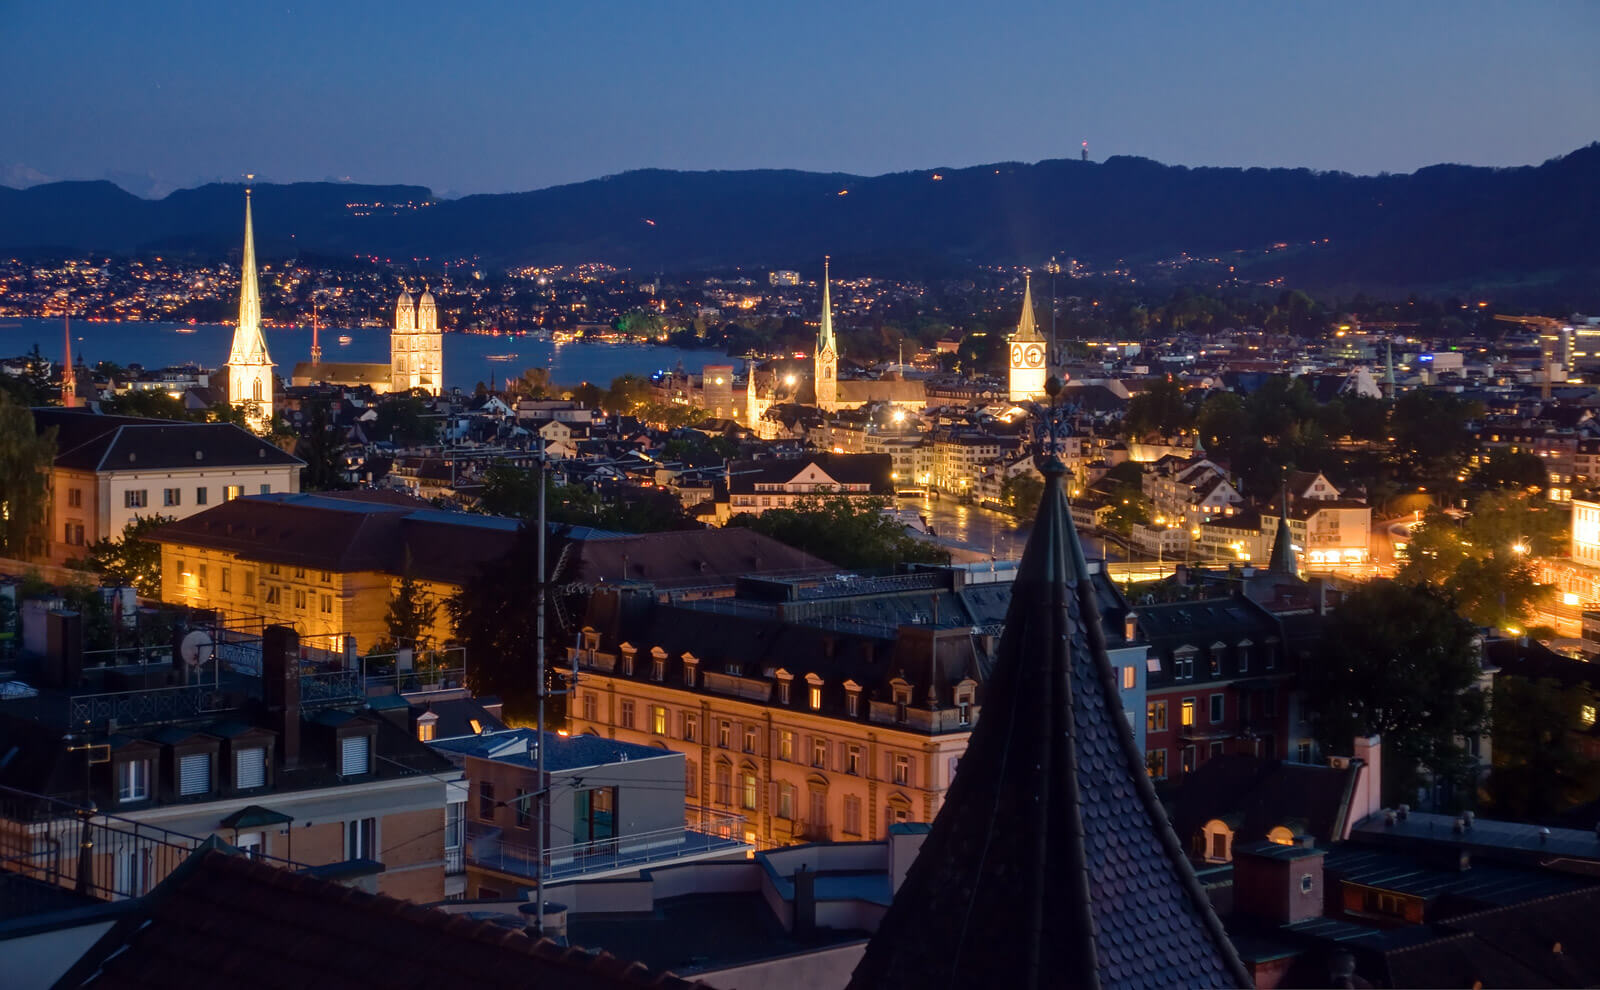 Cheap flights to Zurich